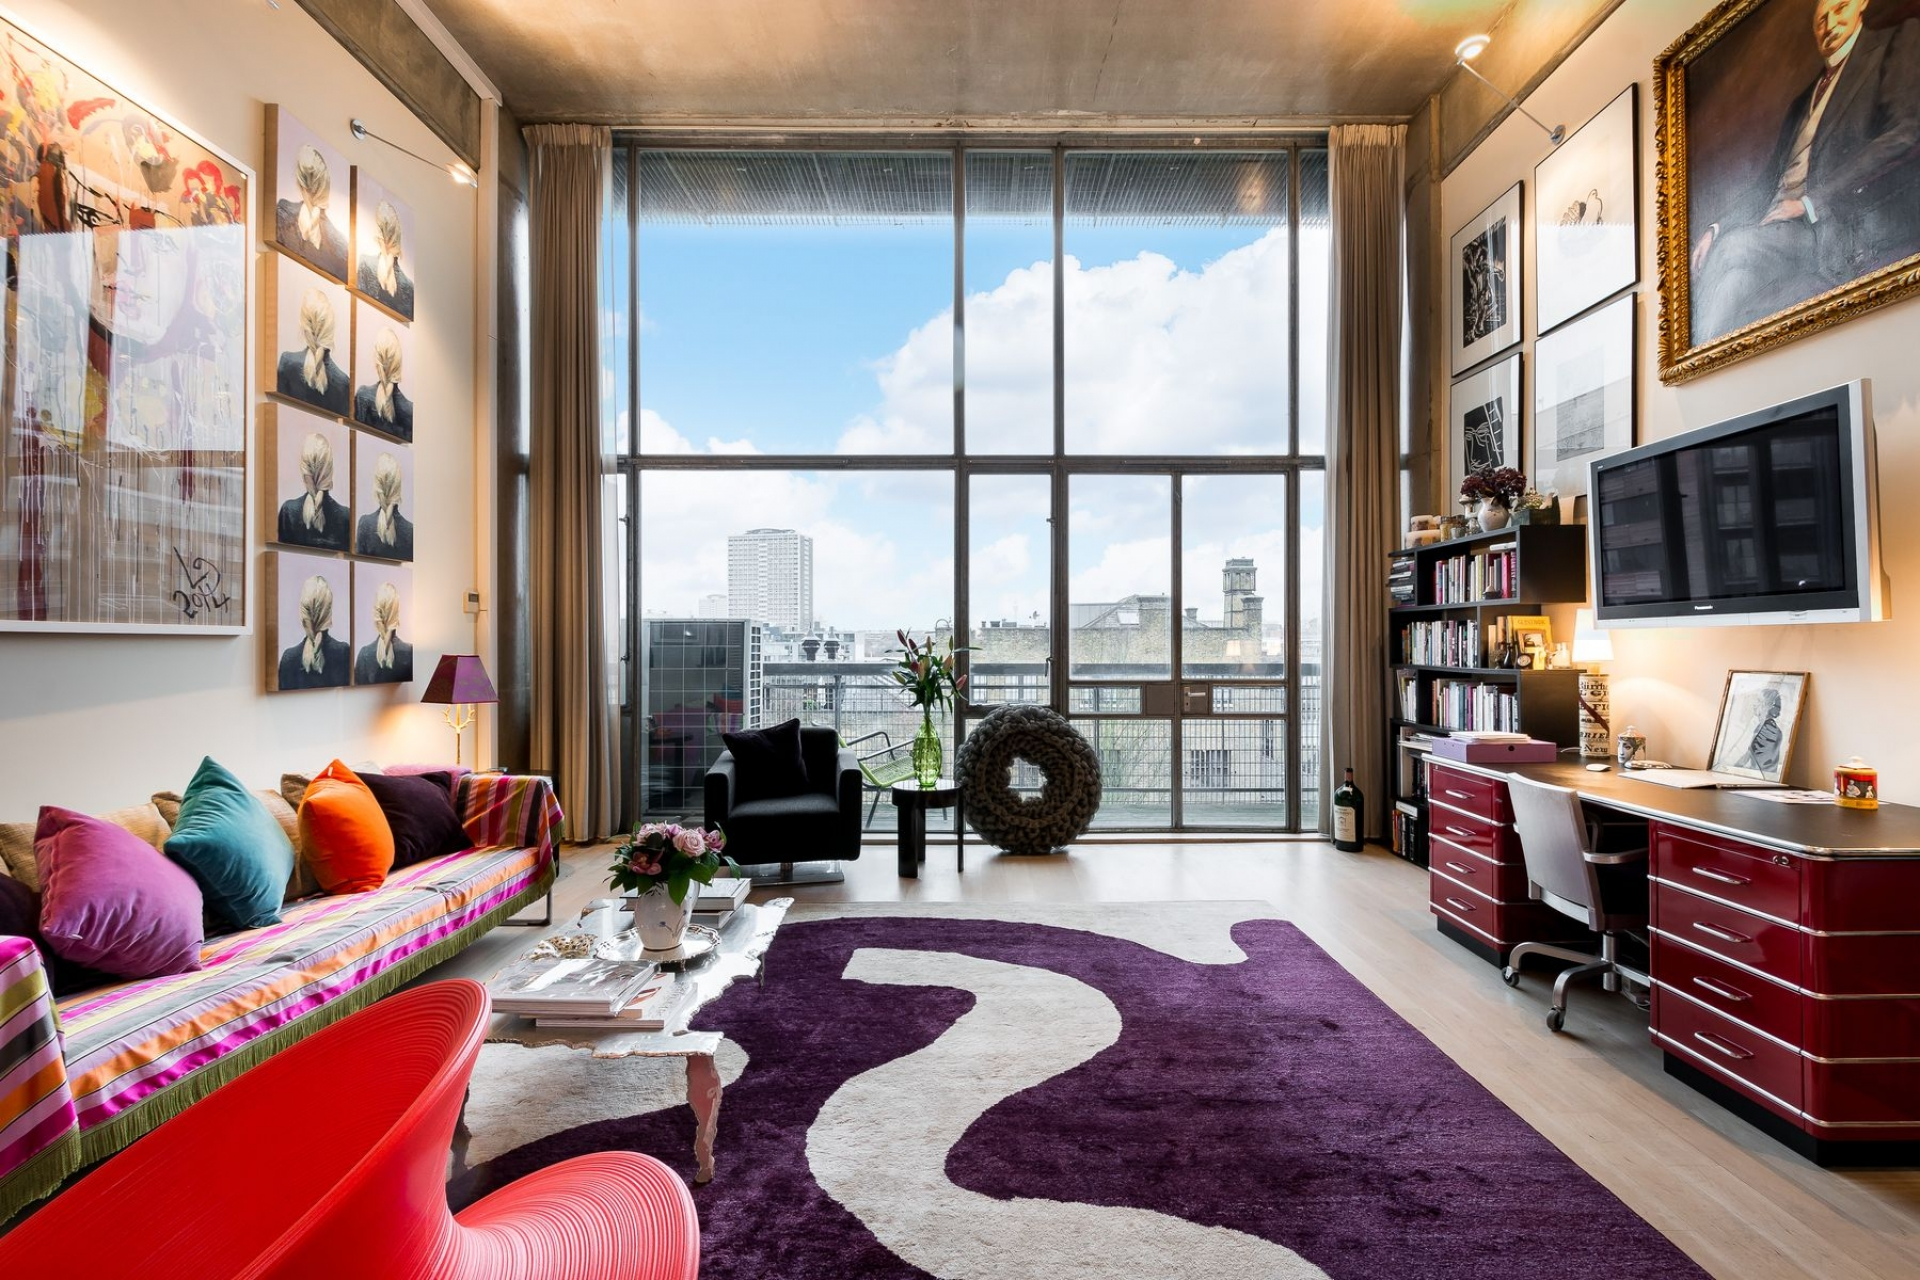 loft apartments for sale on london london property search